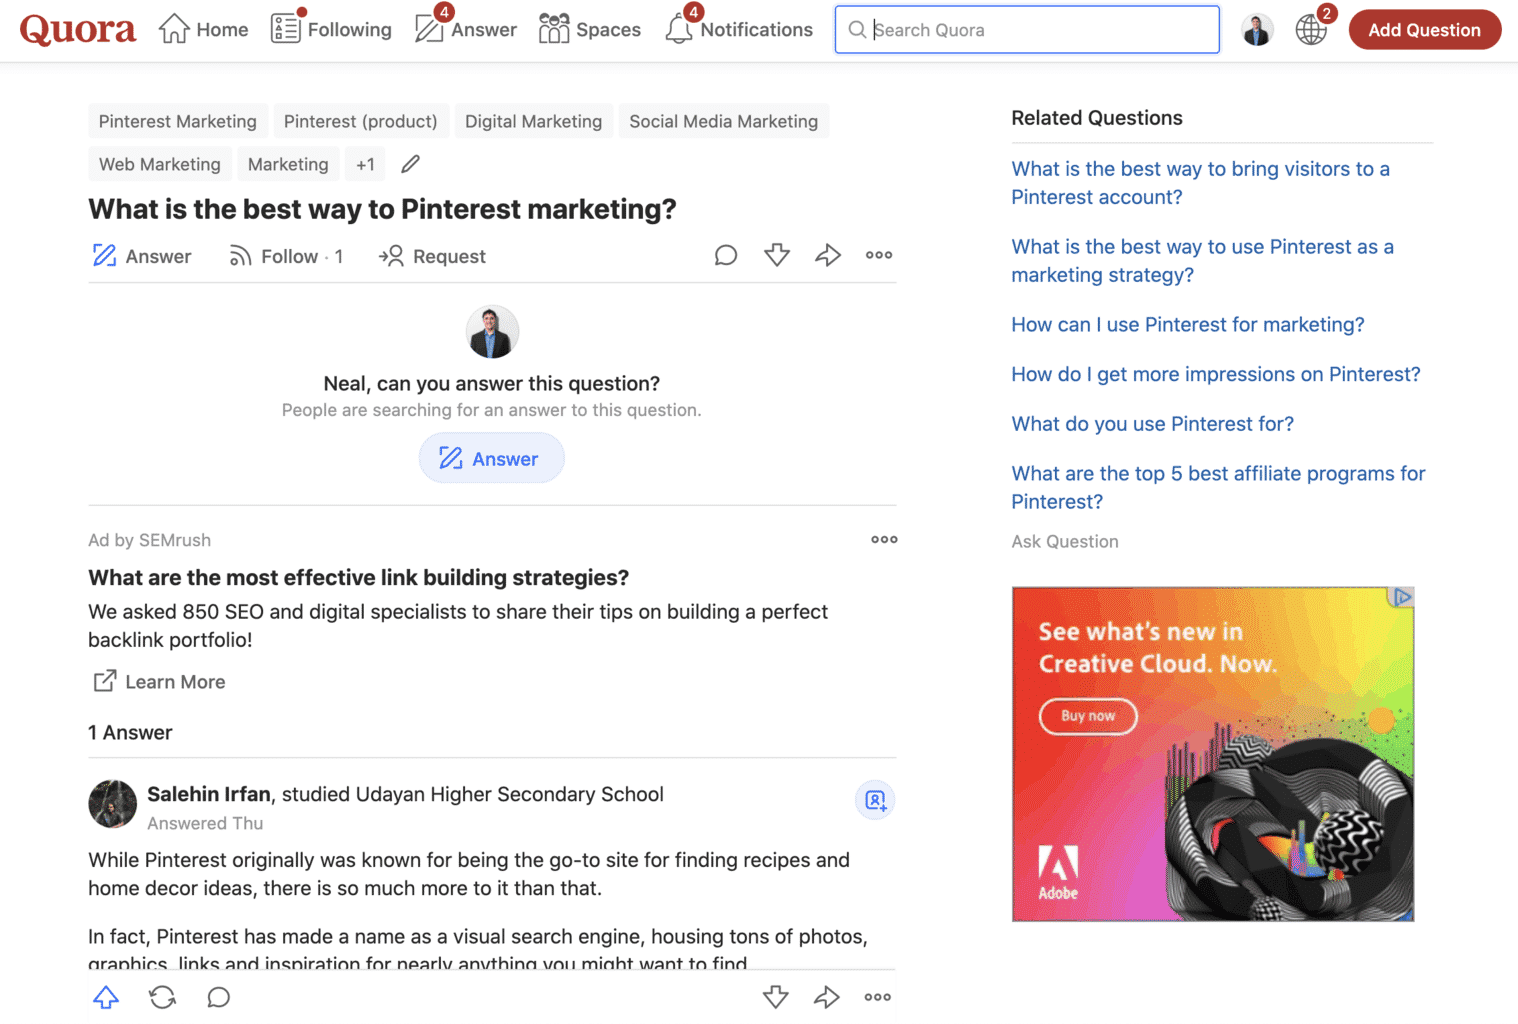 Quora Q&A on Pinterest marketing